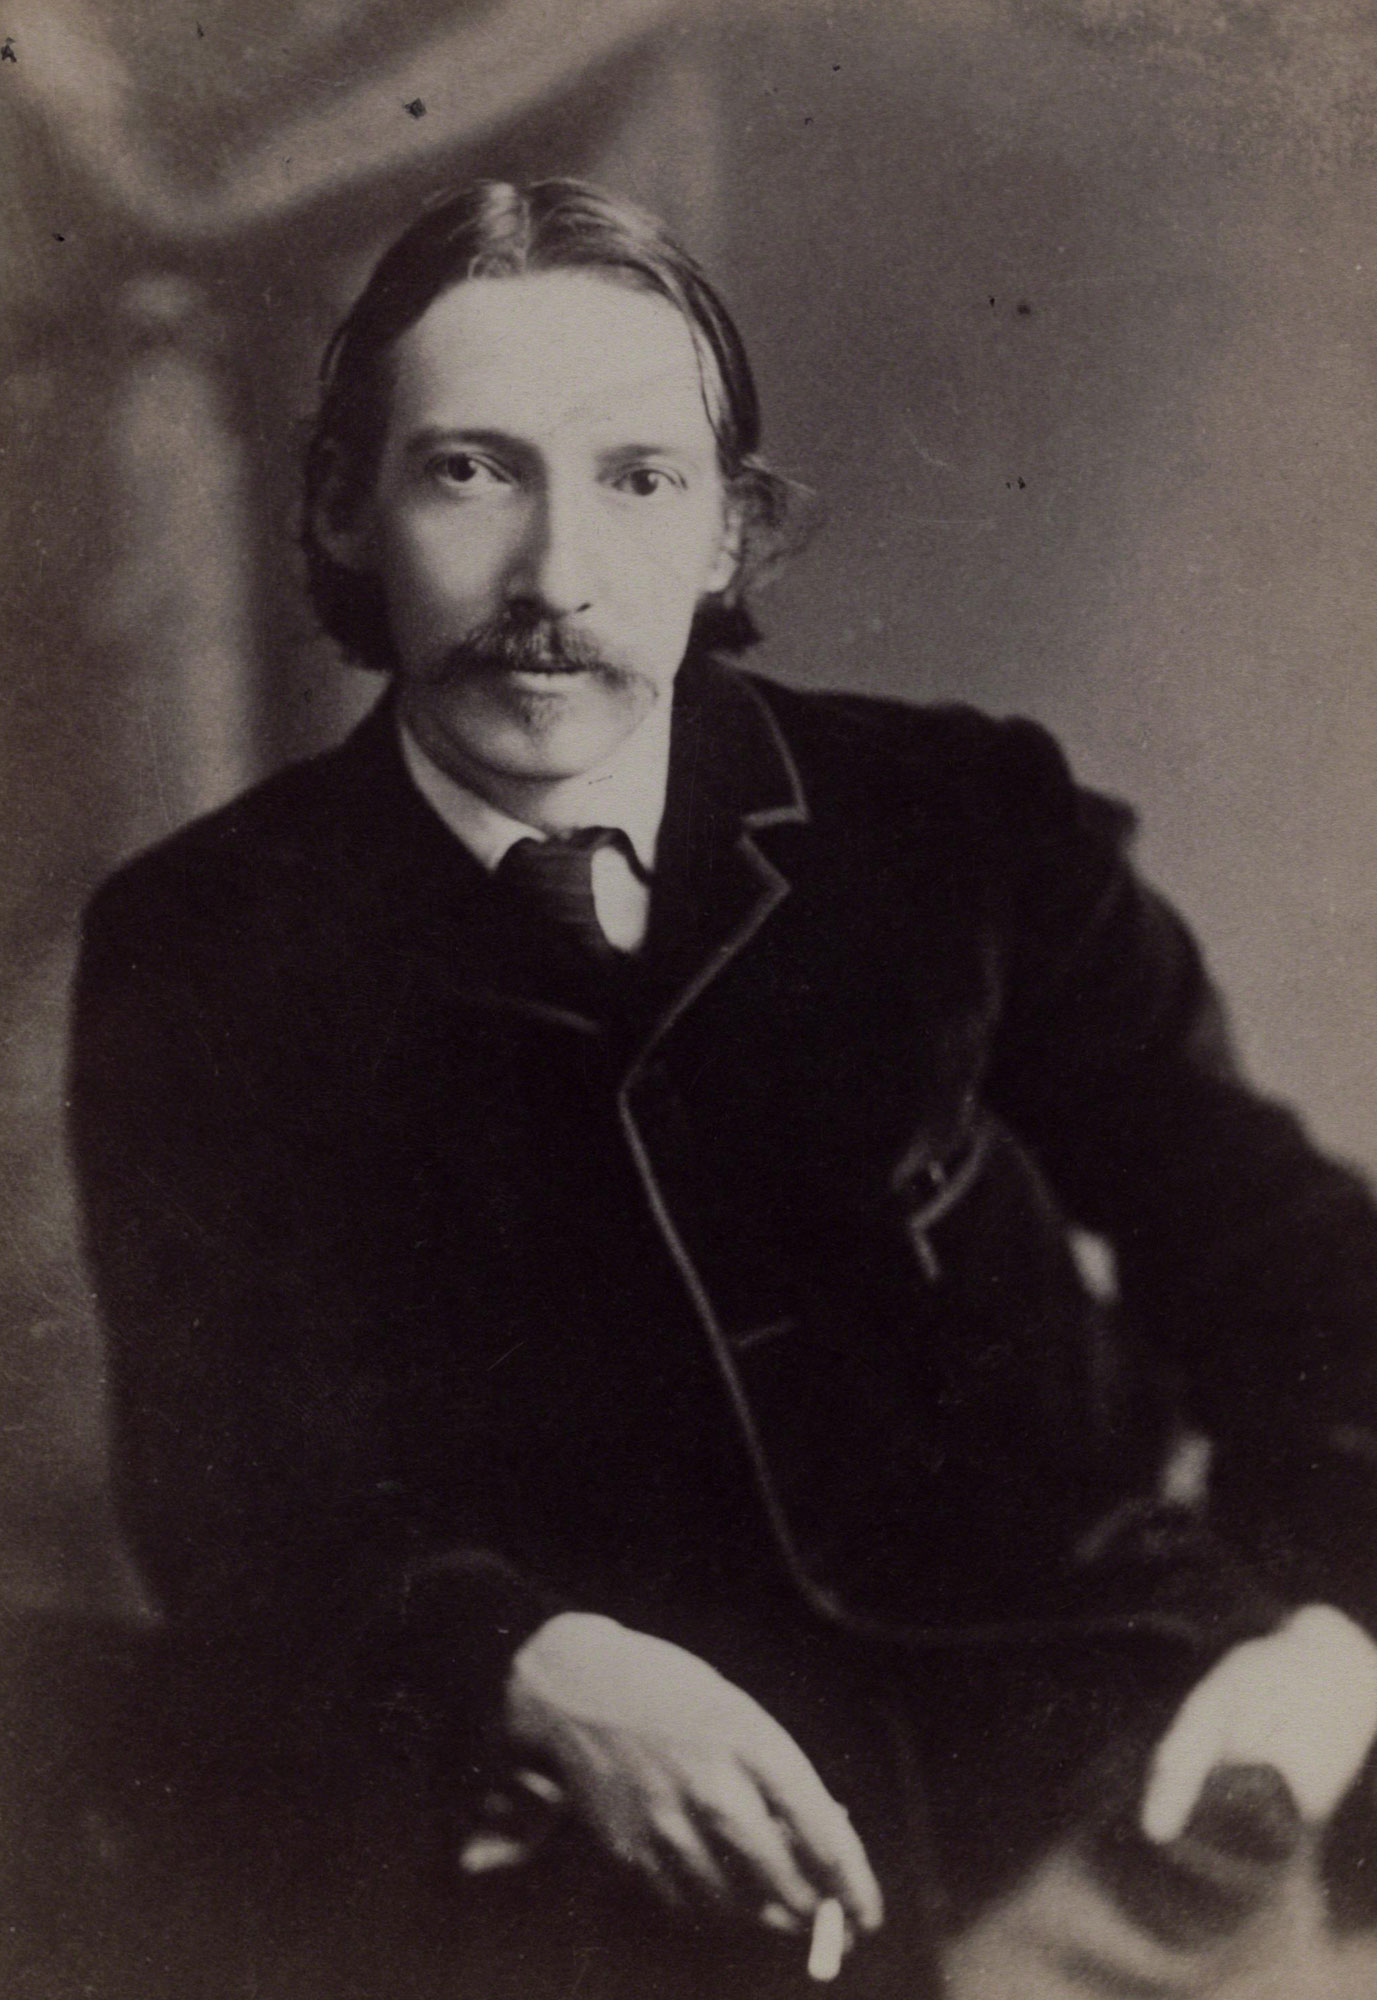 Robert Louis Stevenson, author of Treasure Island and Strange Case of Dr Jekyll and Mr Hyde. Portrait photograph by William Notman © National Portrait Gallery, London.